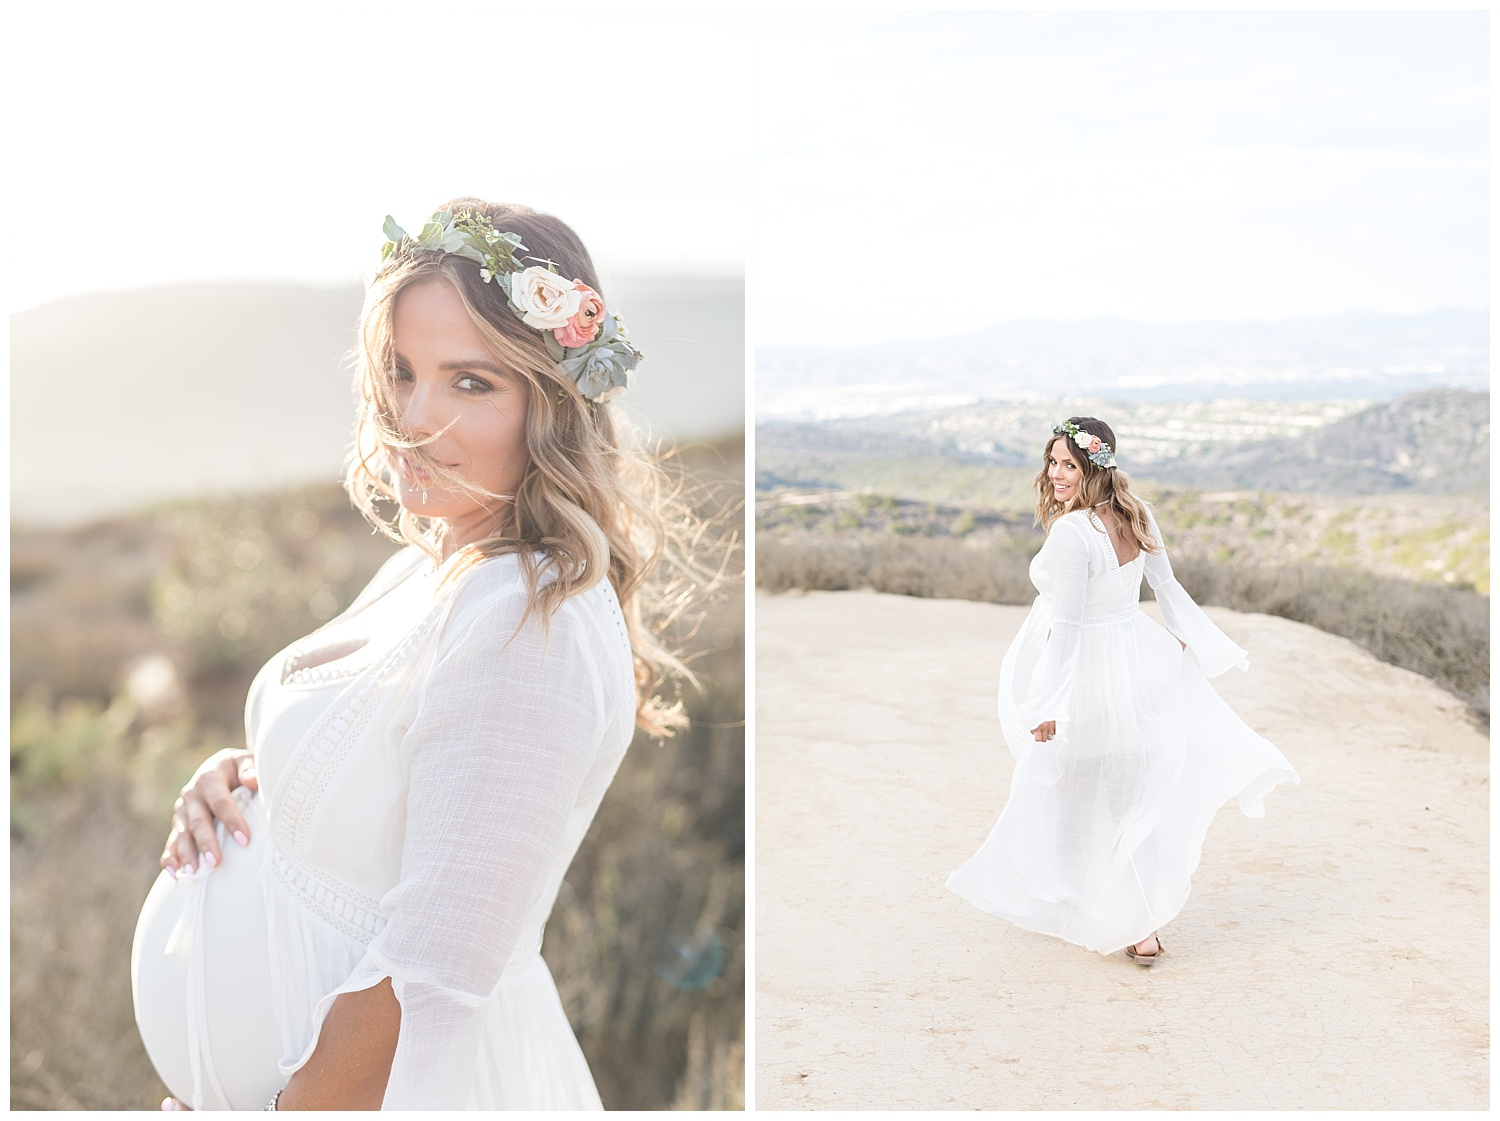 ashley - laguna beach, orange county hiking trail - maternity-0029